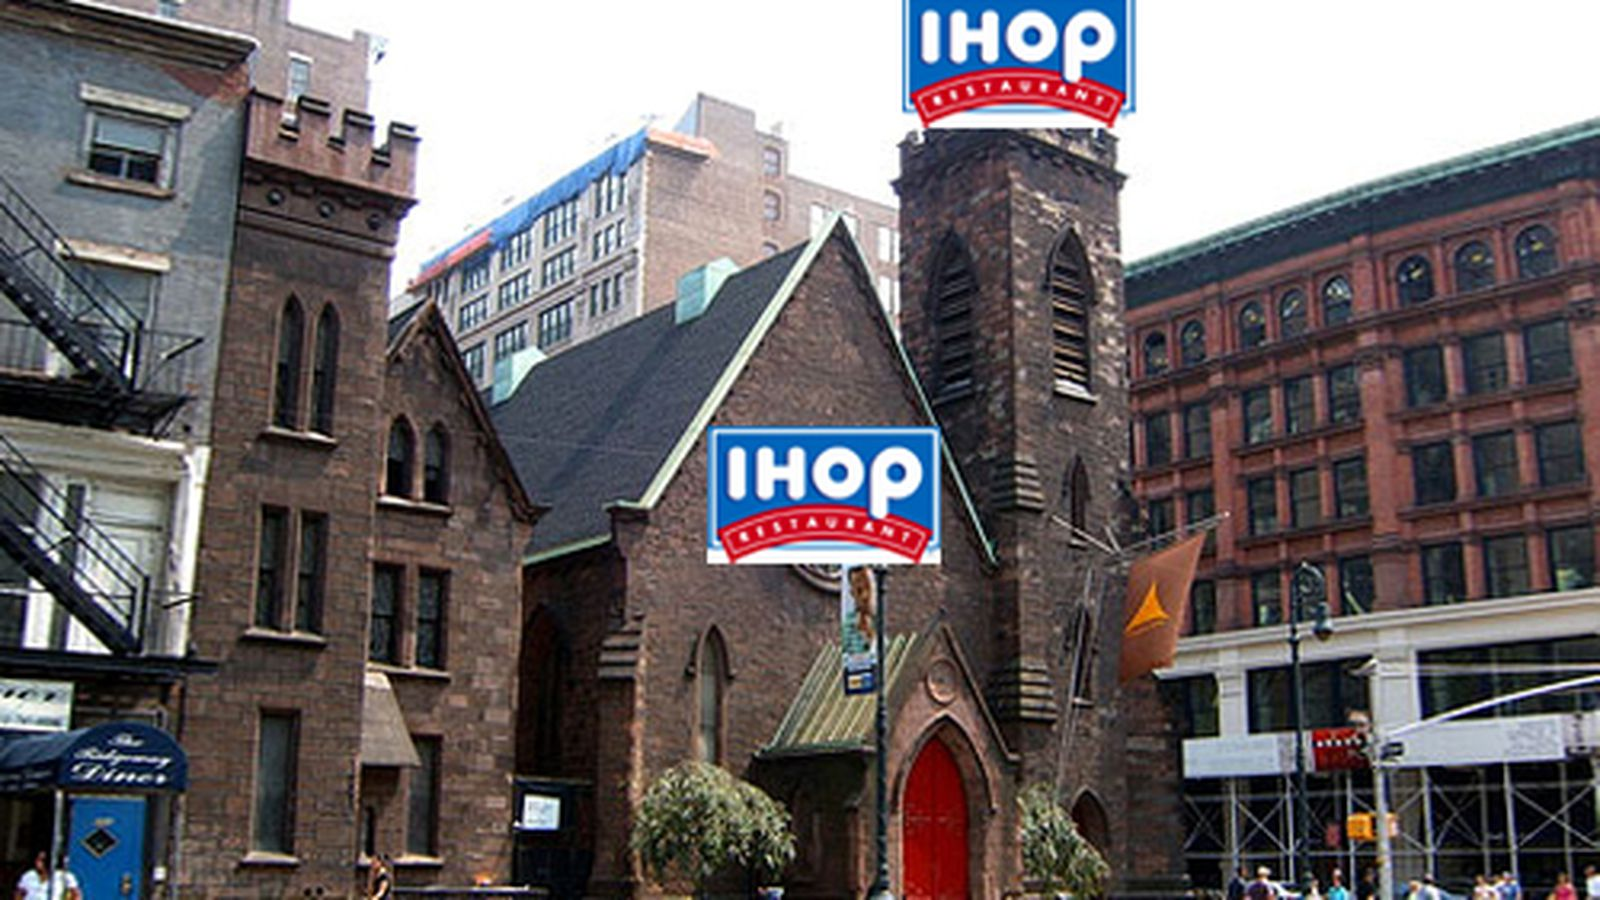 IHOP to Open in the Limelight Marketplace - Eater NY